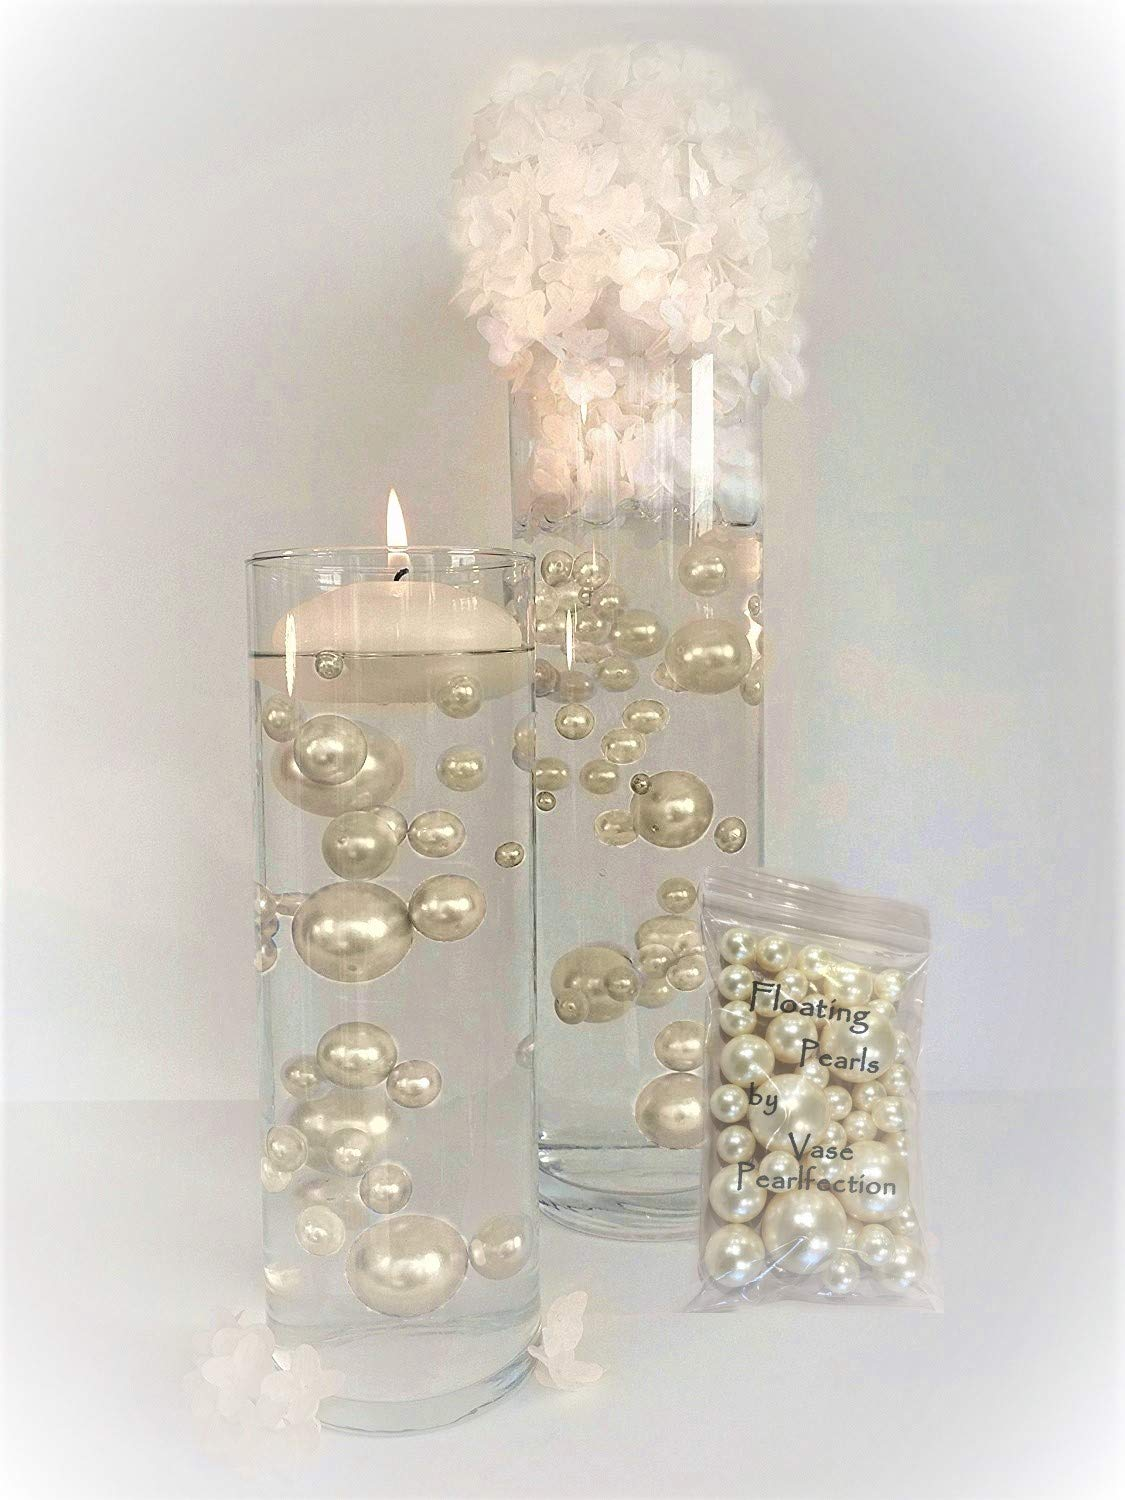 Floating All Ivory Pearls - Unique Jumbo and Assorted Sizes Vase Fillers for Centerpieces Decorations with 2 Transparent Water Gels Packets Combo Discount